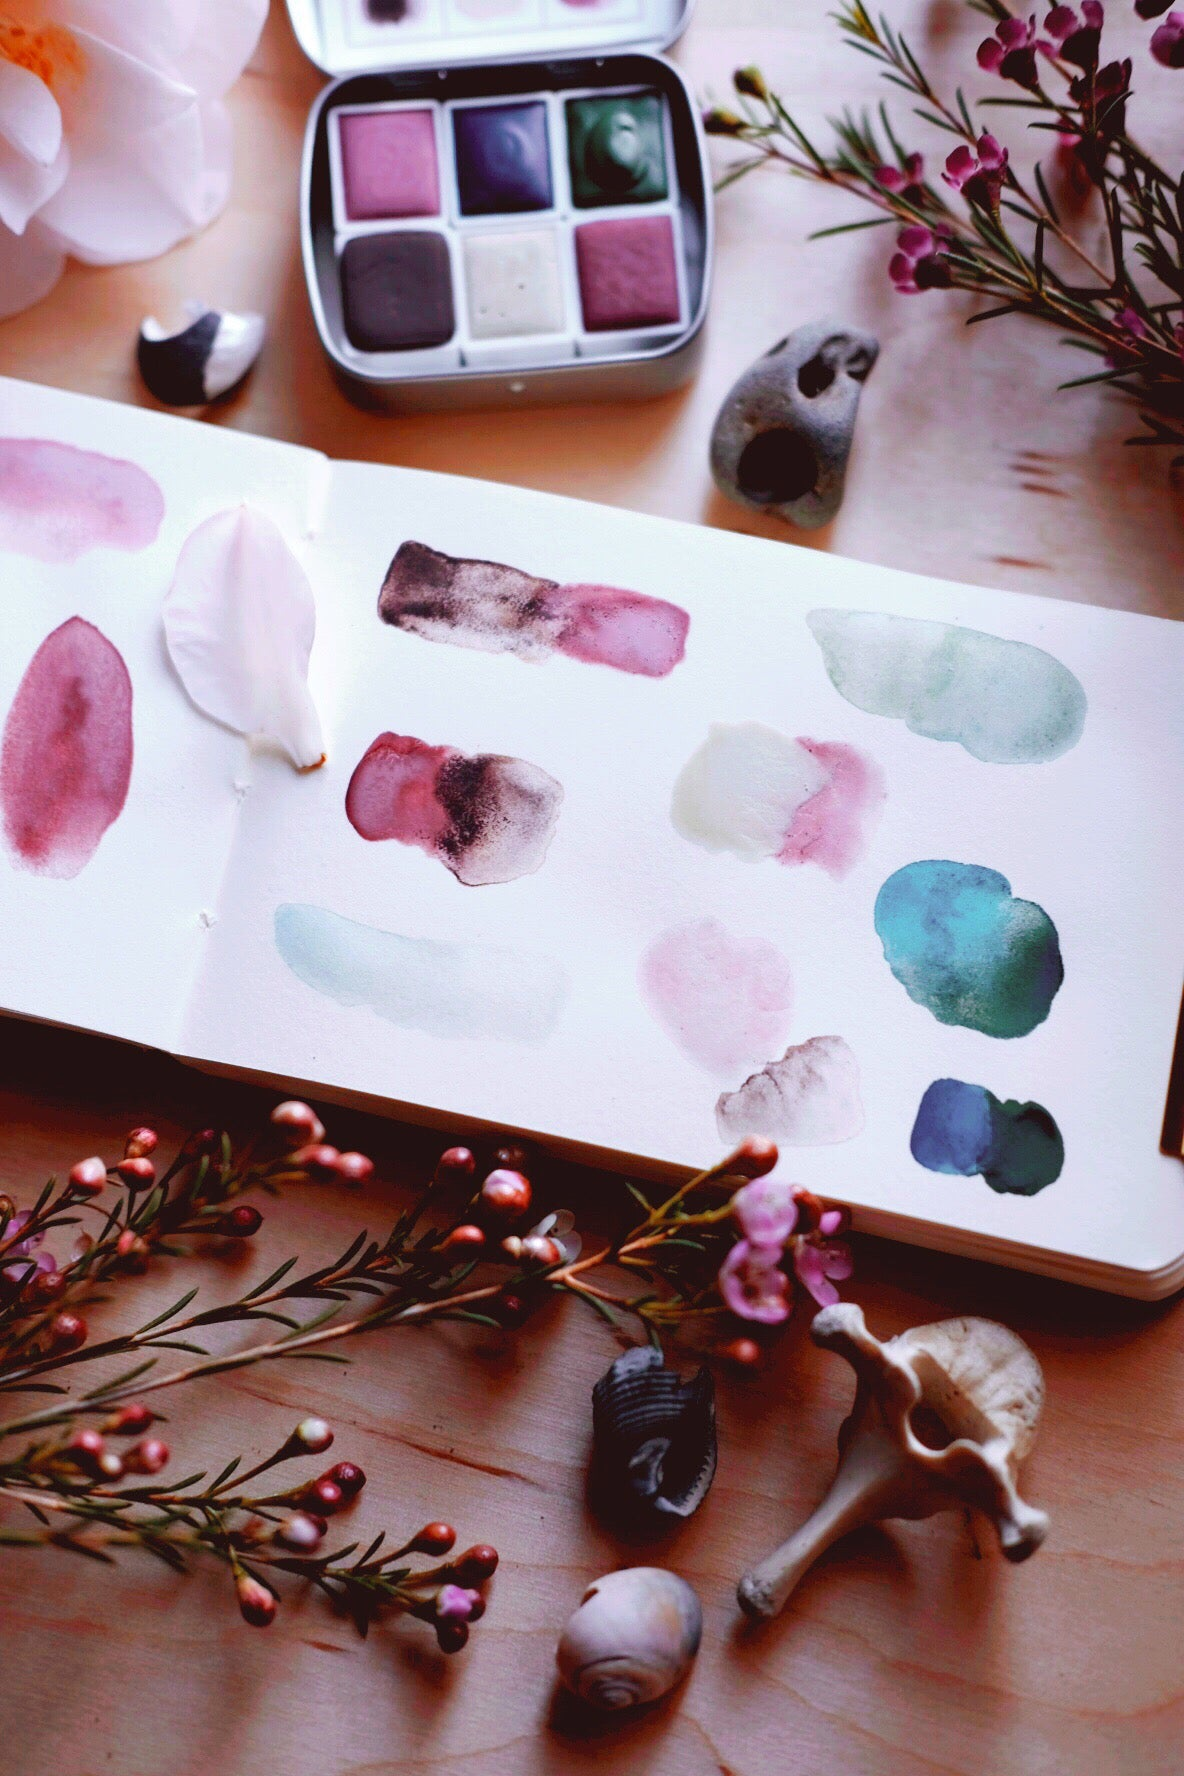 RESERVE for Jessica + Seashell Floret - Limited edition Gemstone Mineral watercolor palette